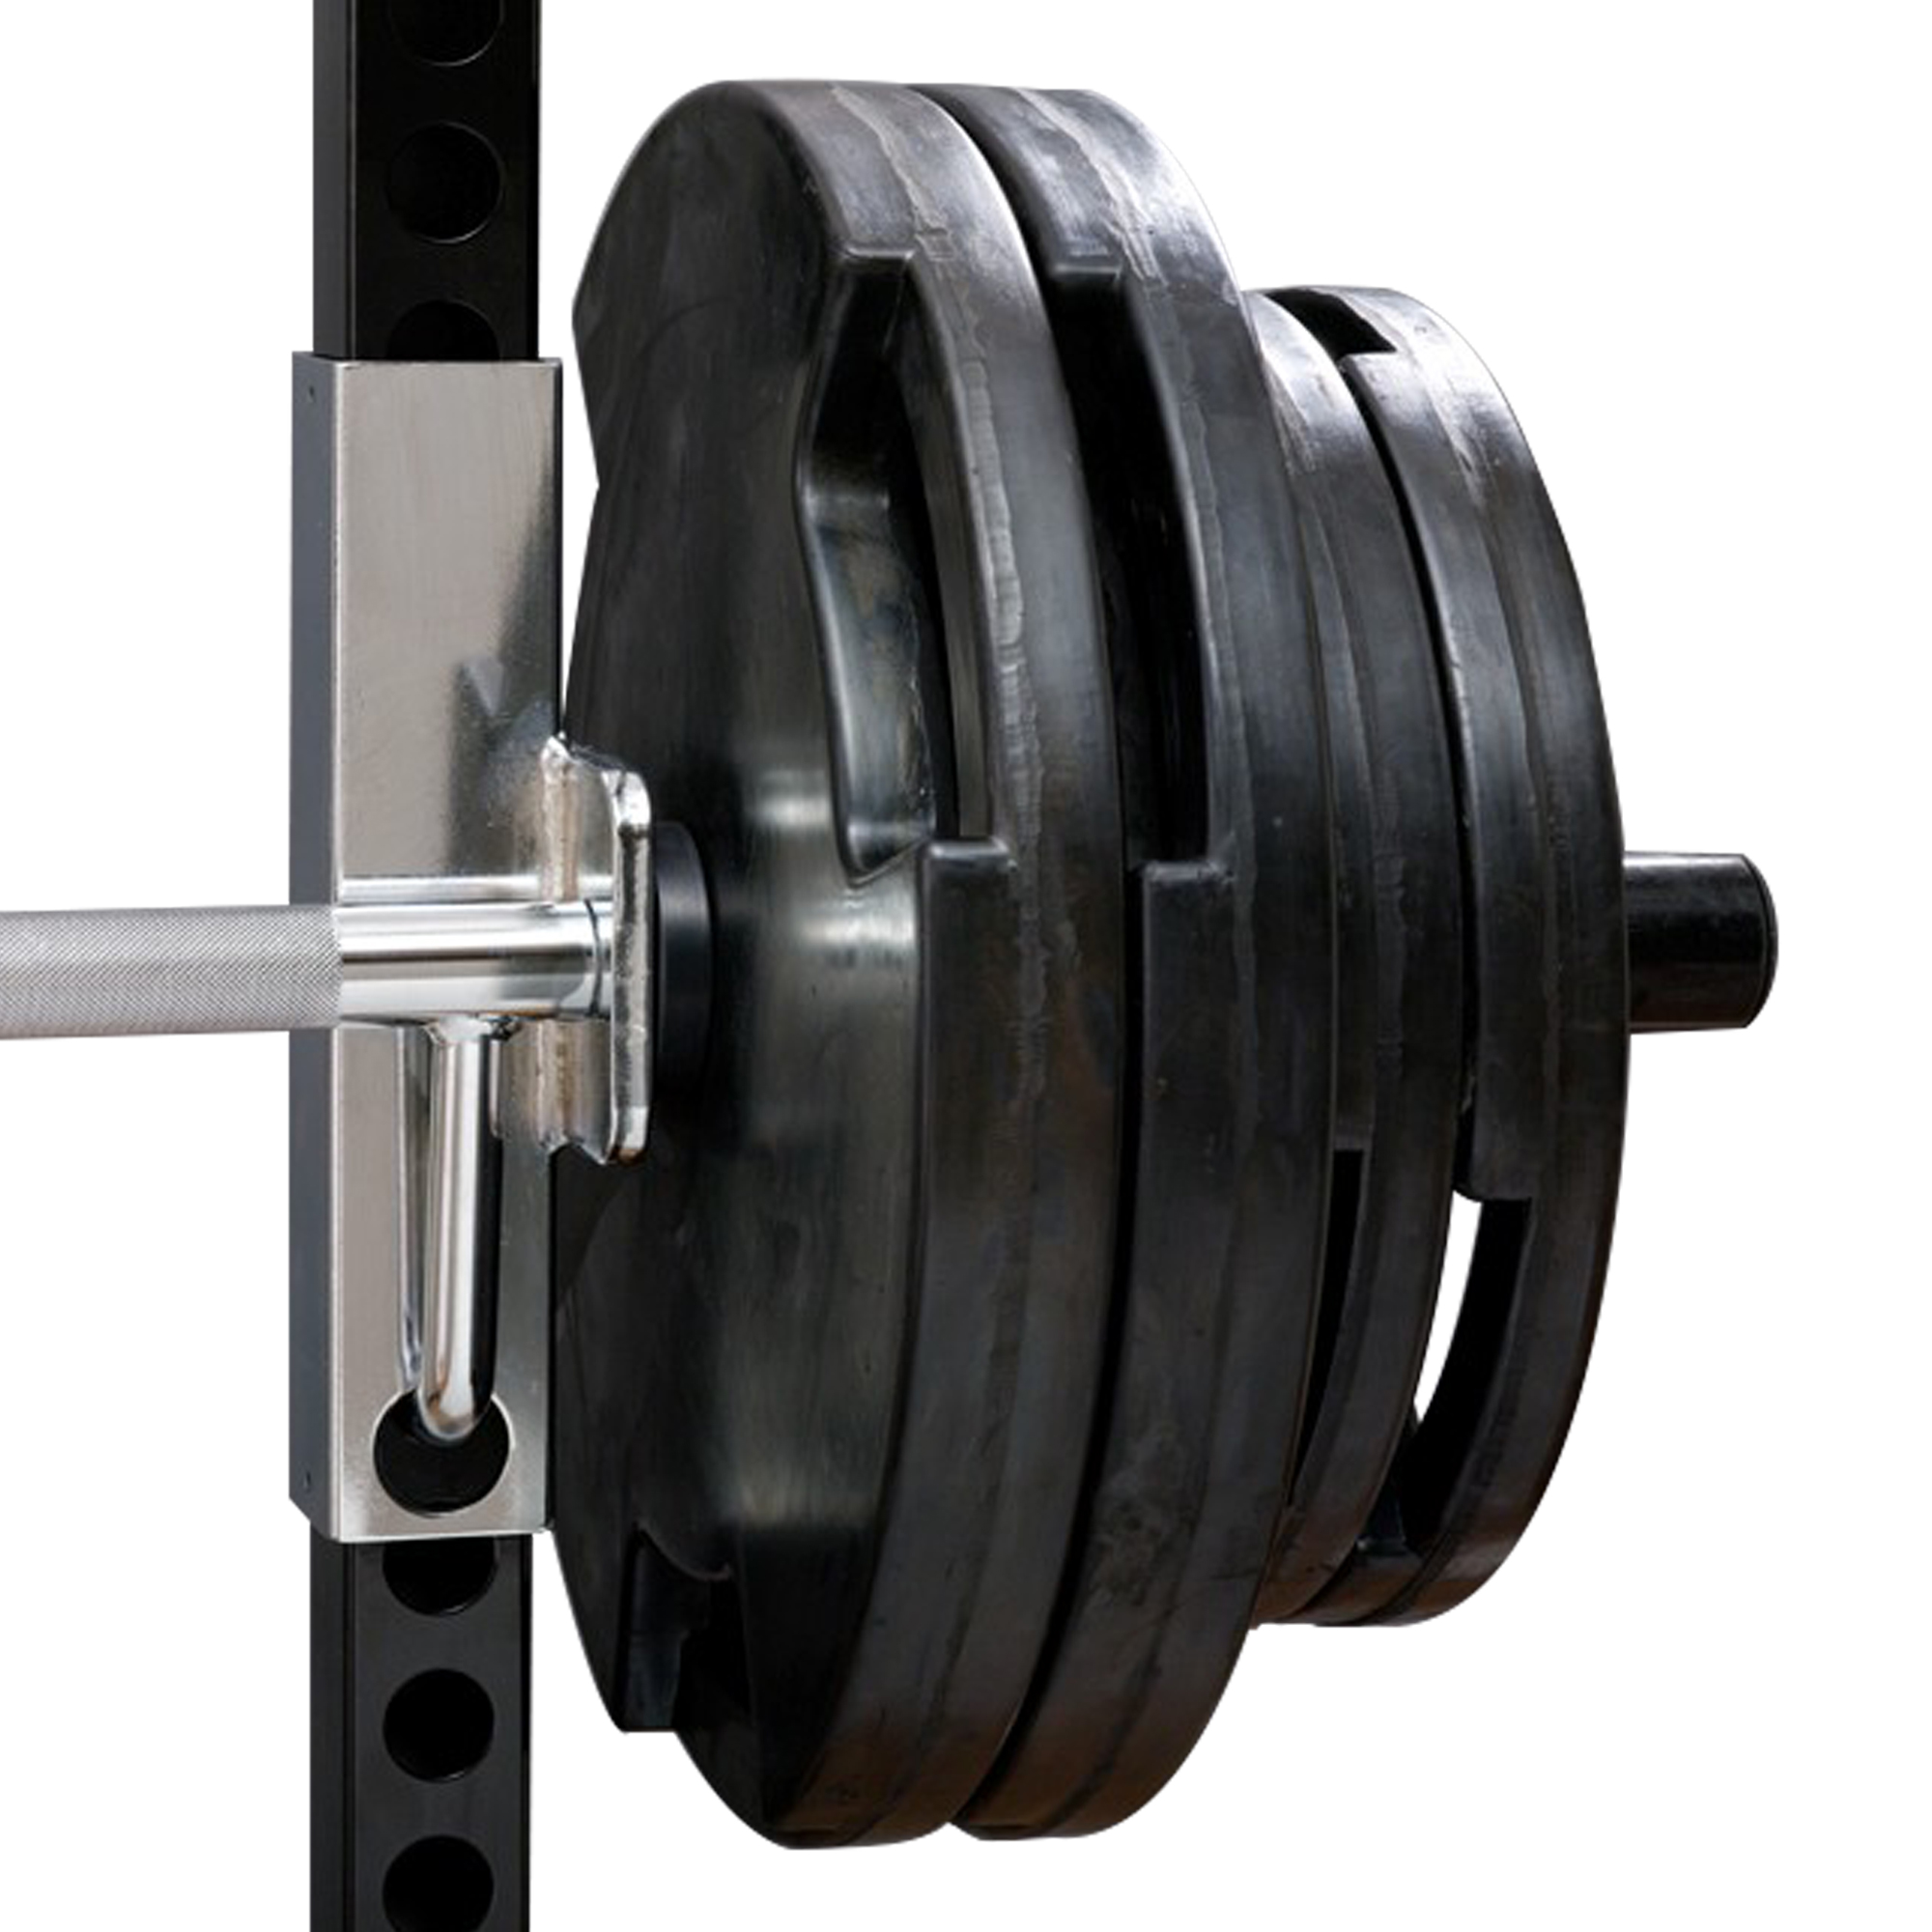 IronmasterUK IM2000 barbell with olympic sleeve